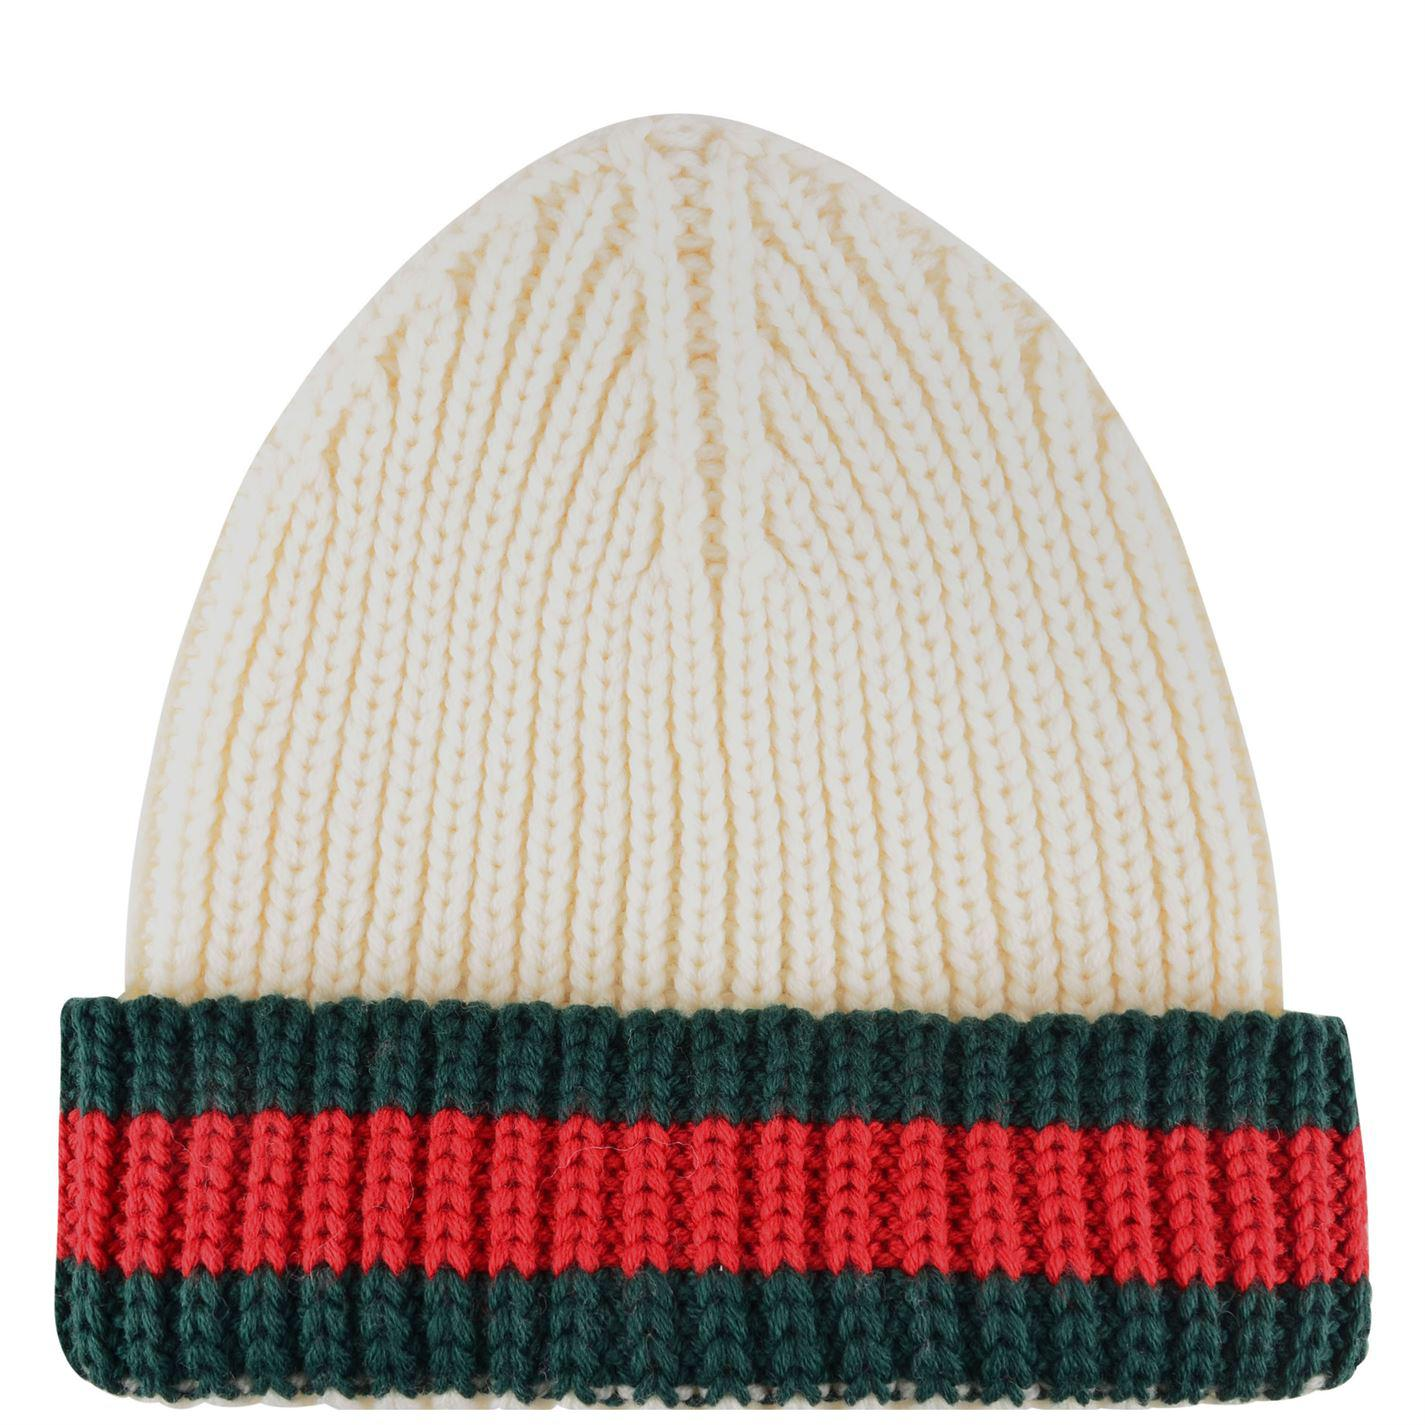 Lyst - Gucci Web Trim Beanie Hat in White for Men a49e3da2f759